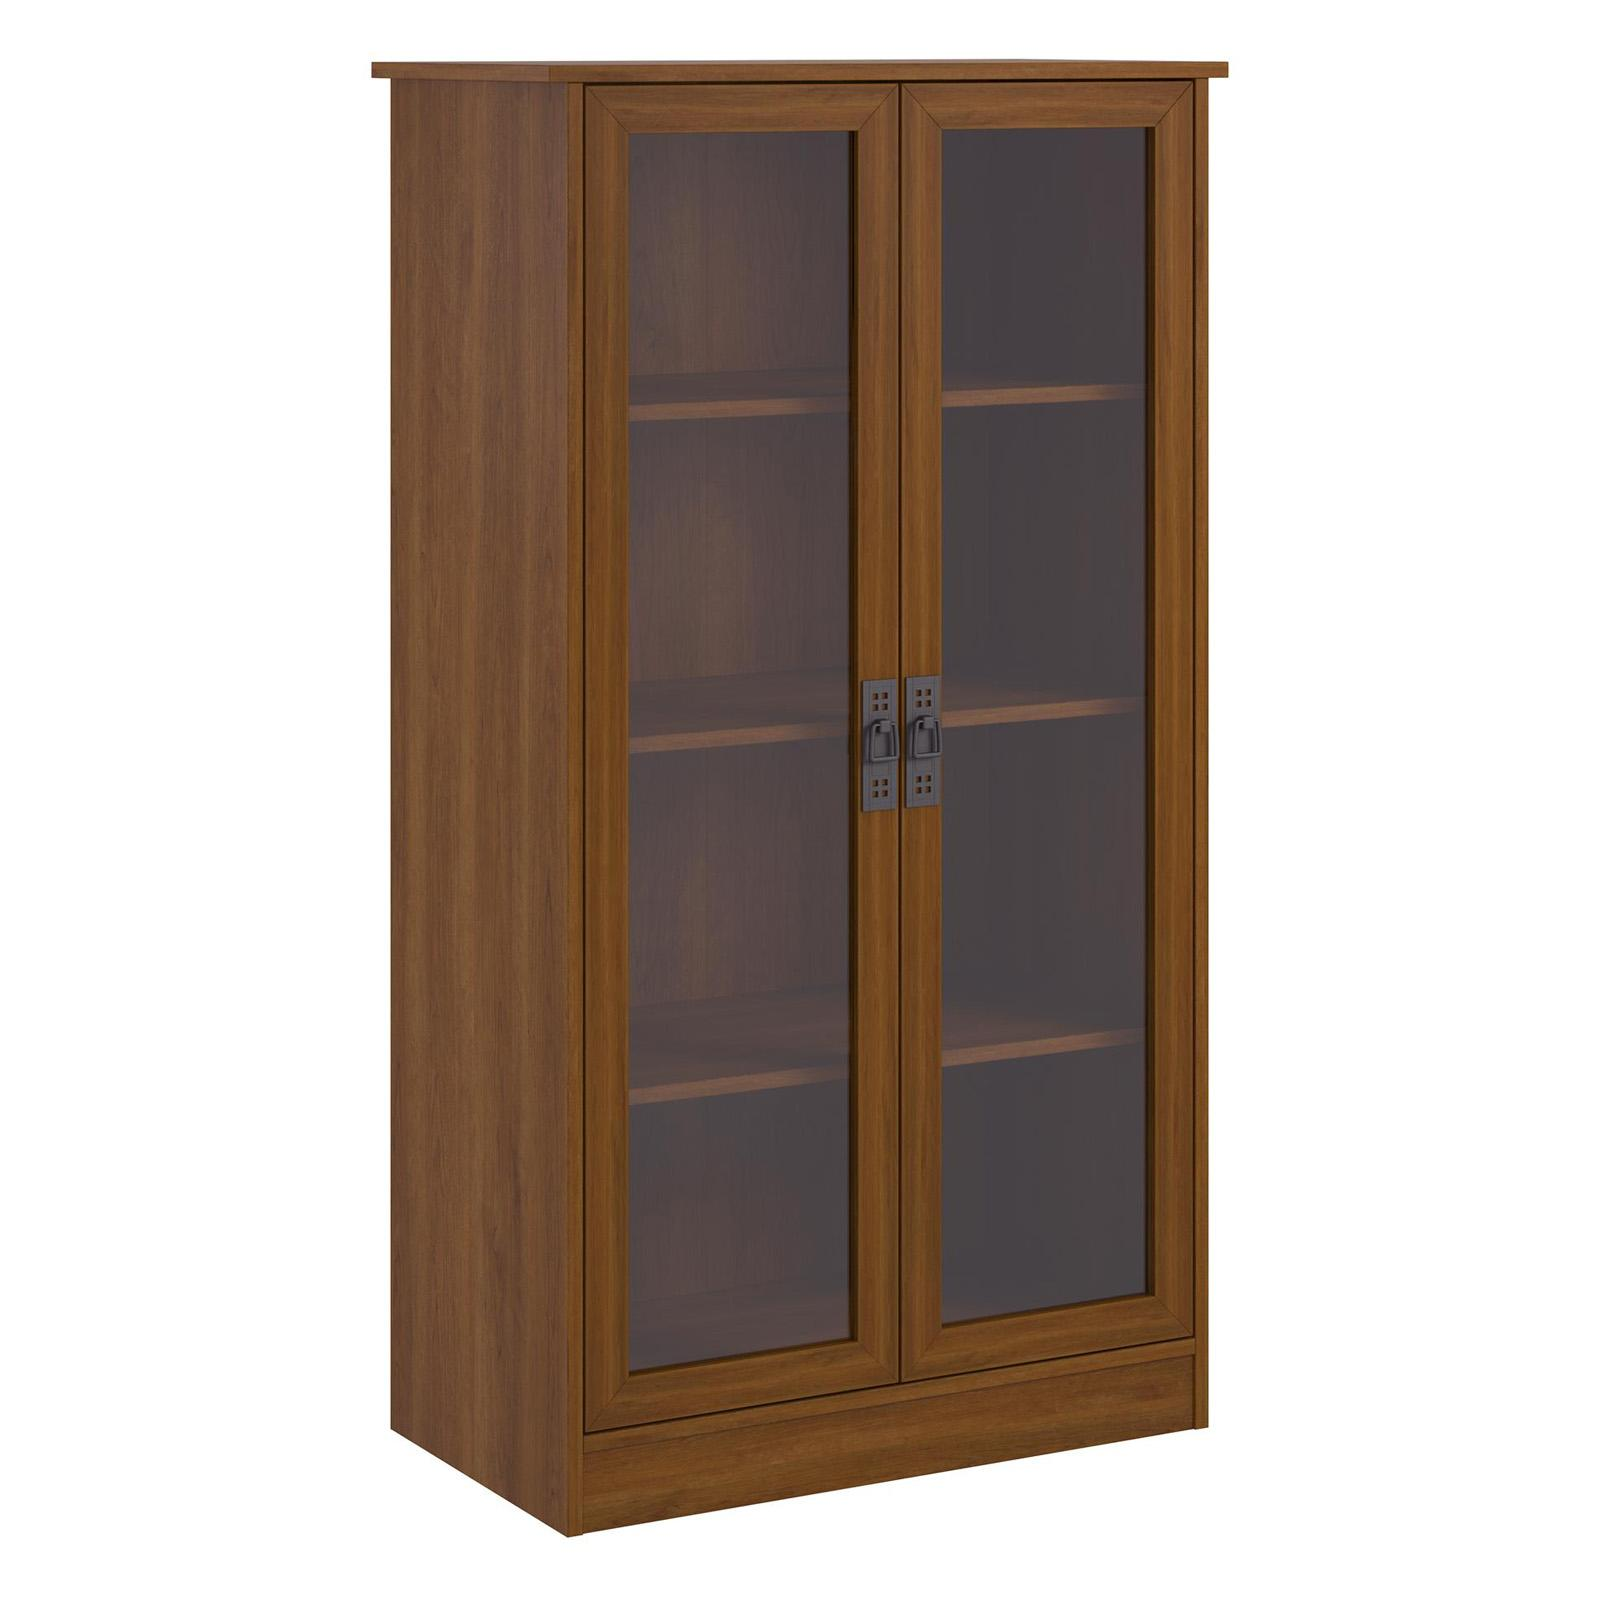 Ameriwood Home Quinton Point Glass Door Bookcase 34825 From 1355